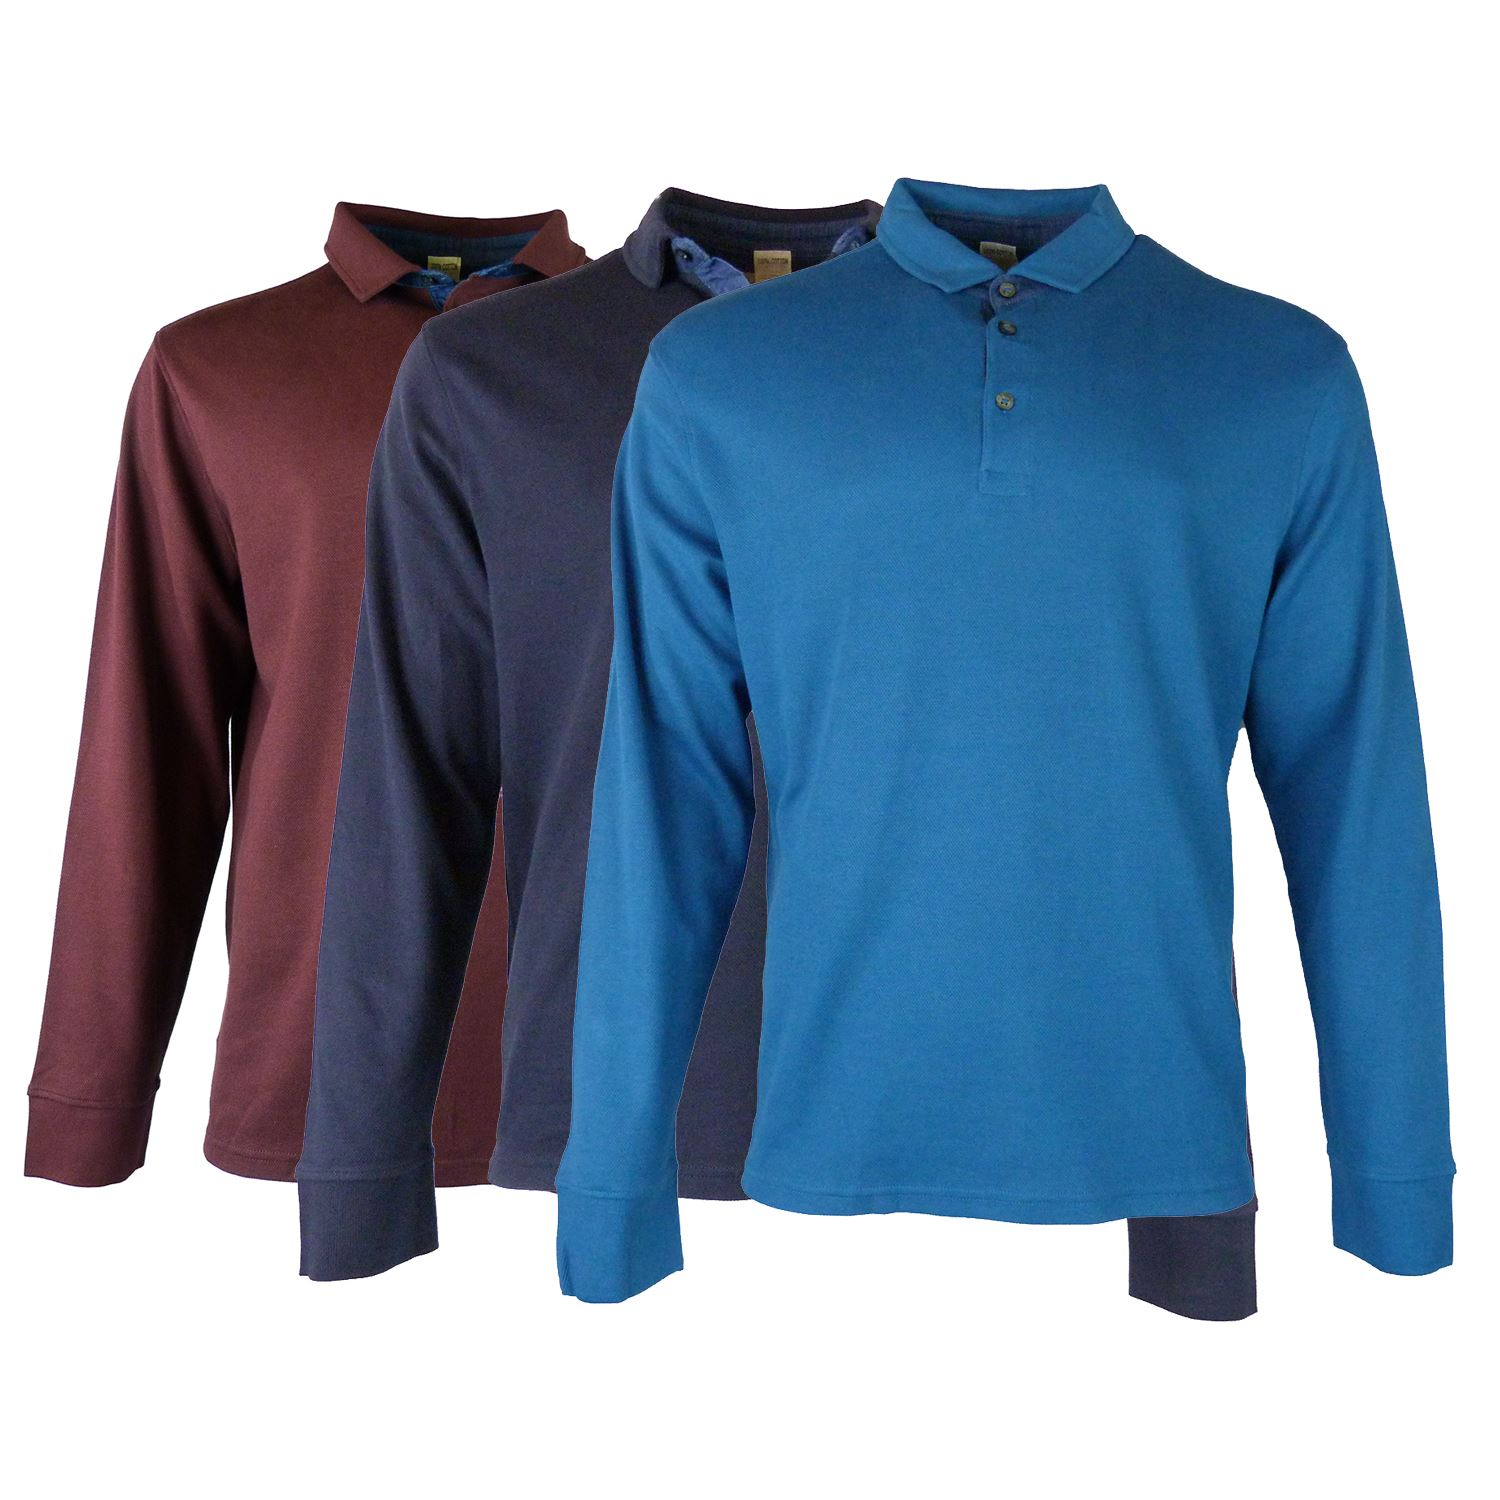 4811a6b9c4c4 EX M S Marks And Spencer Pure Cotton Textured Long Sleeve Polo Shirt ...